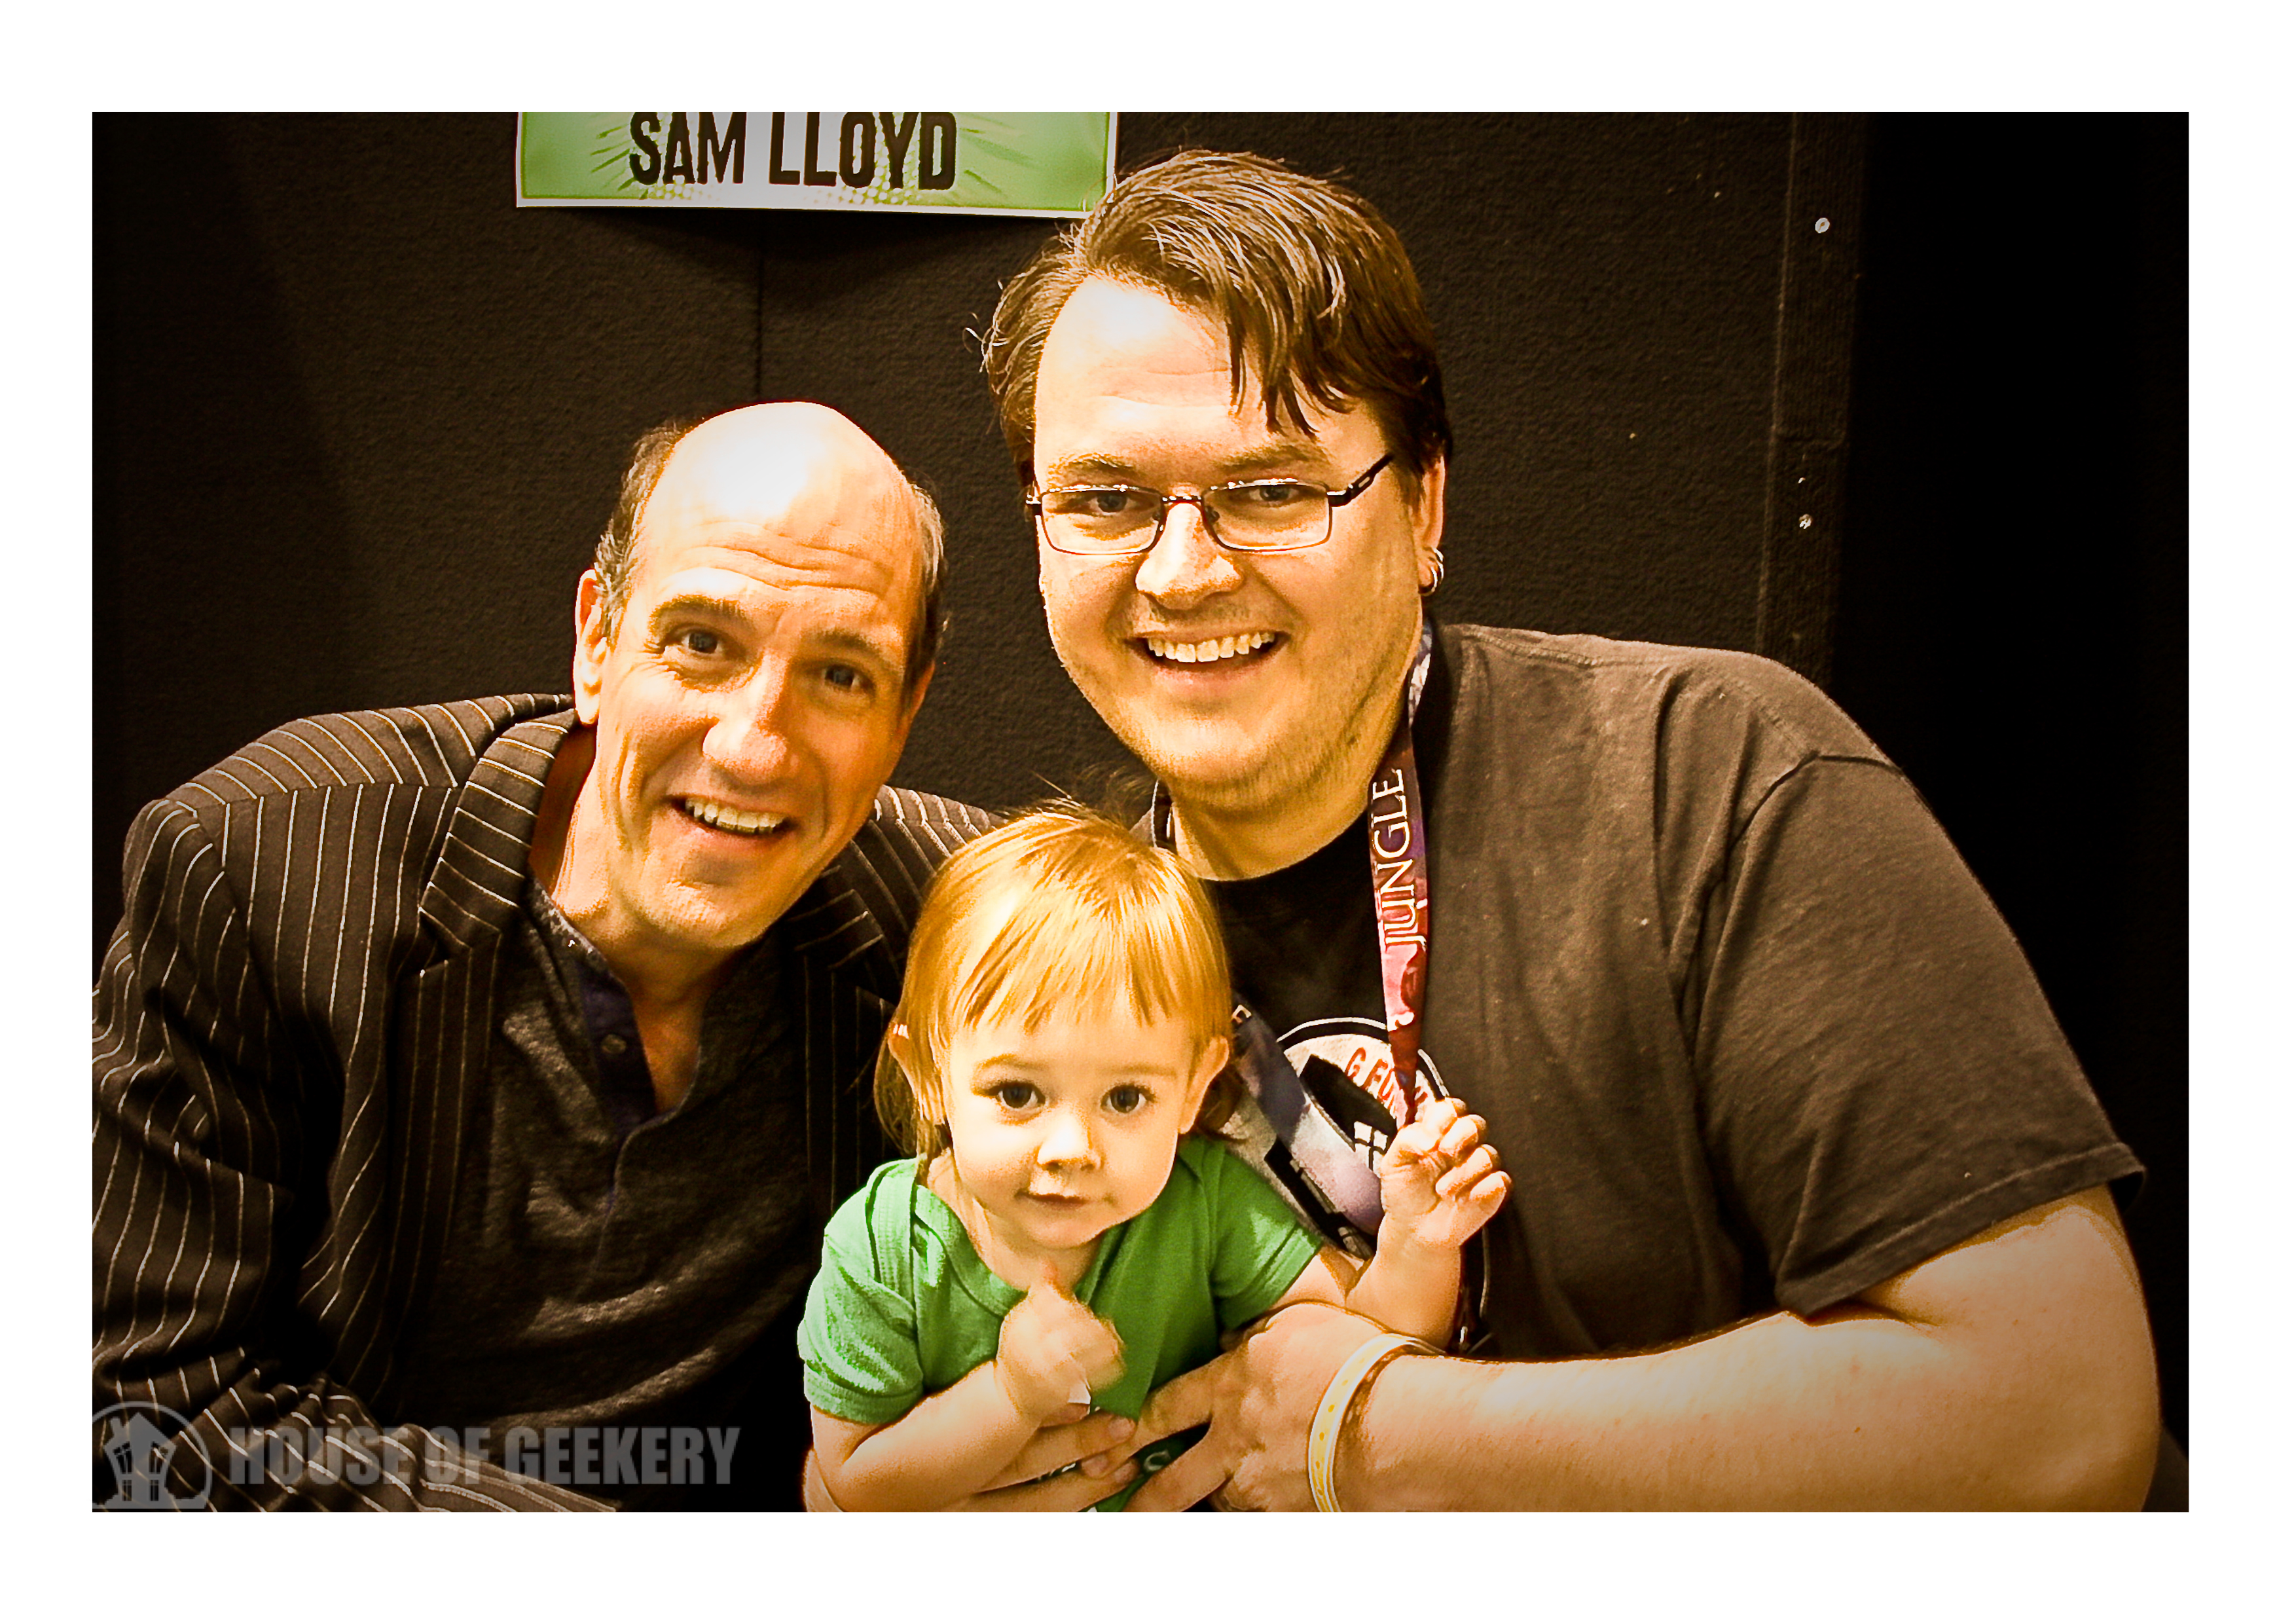 exclusive interview with sam lloyd funk s house of geekery